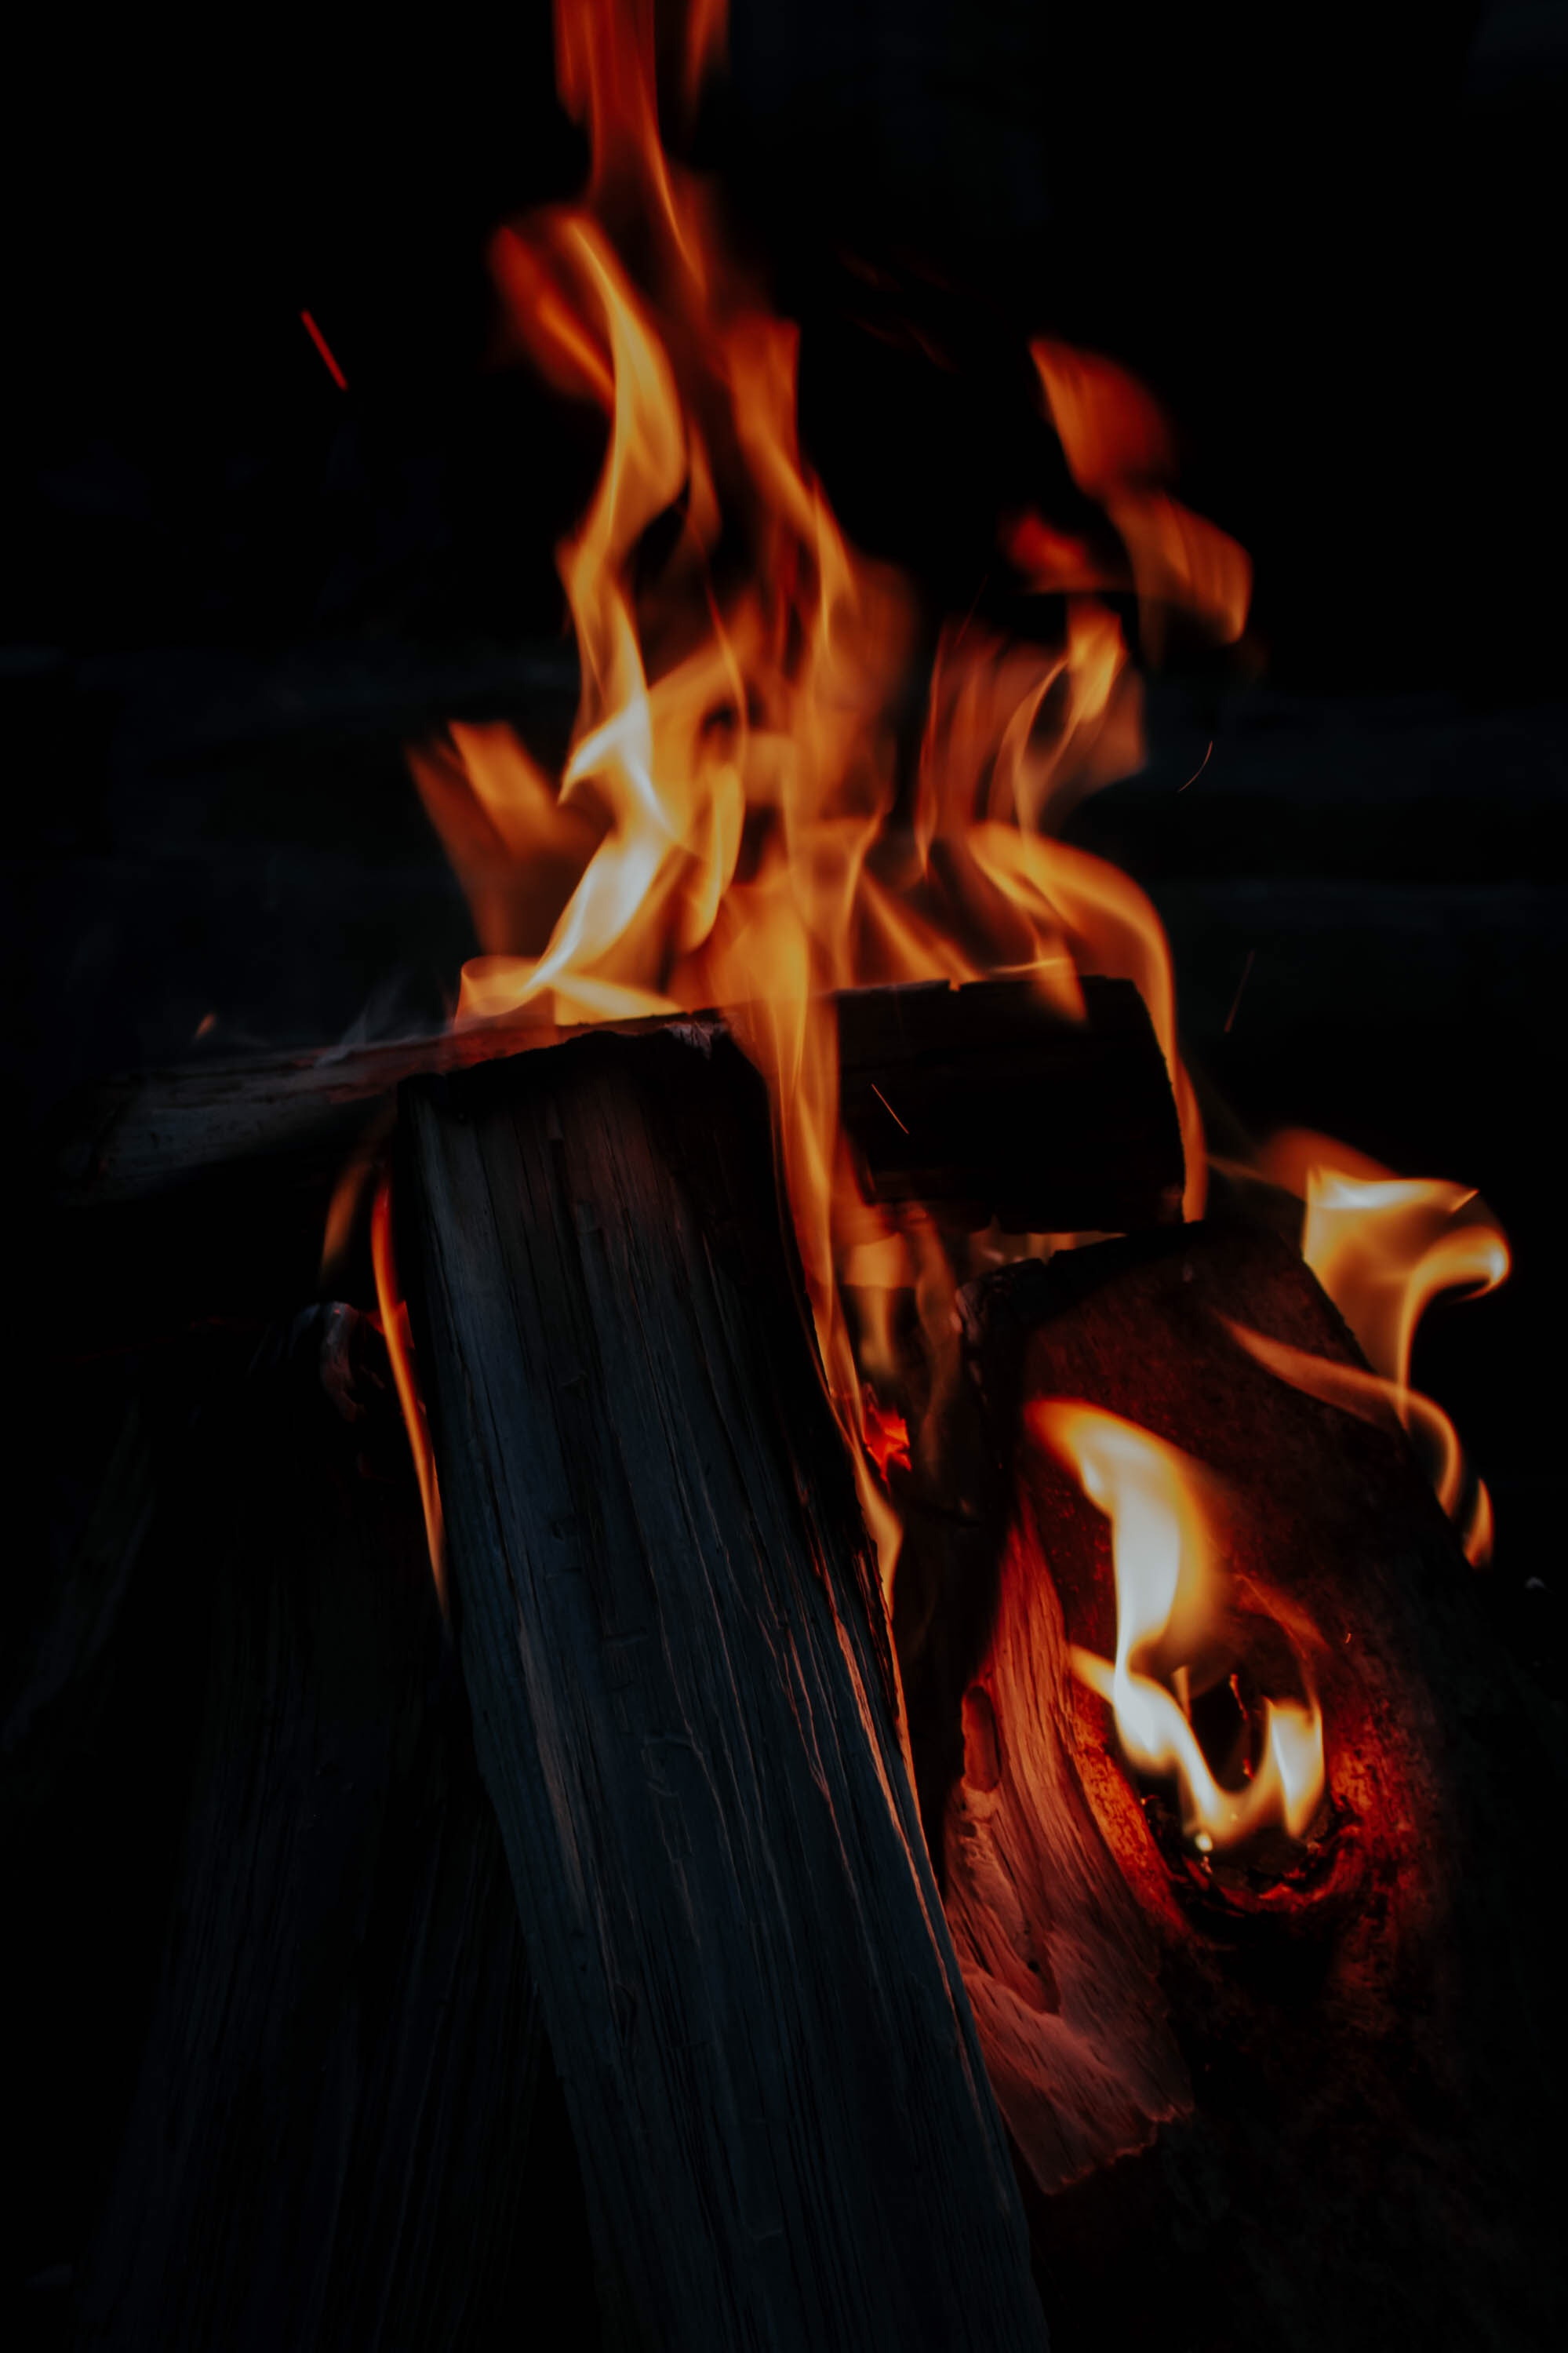 117077 Screensavers and Wallpapers Firewood for phone. Download Fire, Bonfire, Dark, Flame, Firewood pictures for free